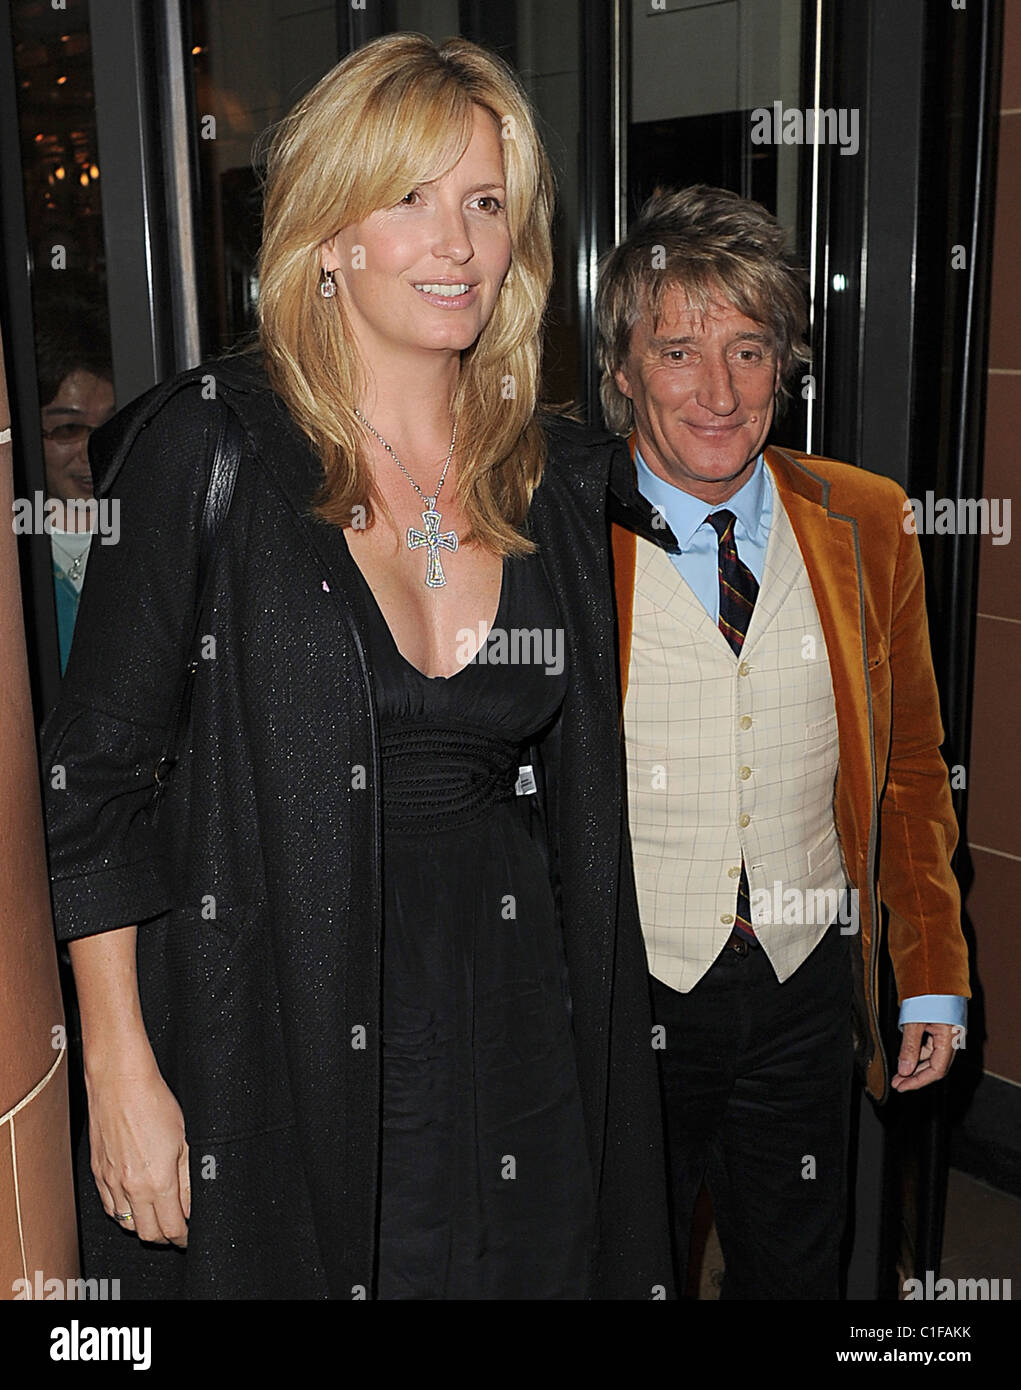 25db2382cc68 Penny Lancaster wearing a large silver cross necklace leaves Ciprani  Restaurant with husband Rod Stewart. Rod refused to sign